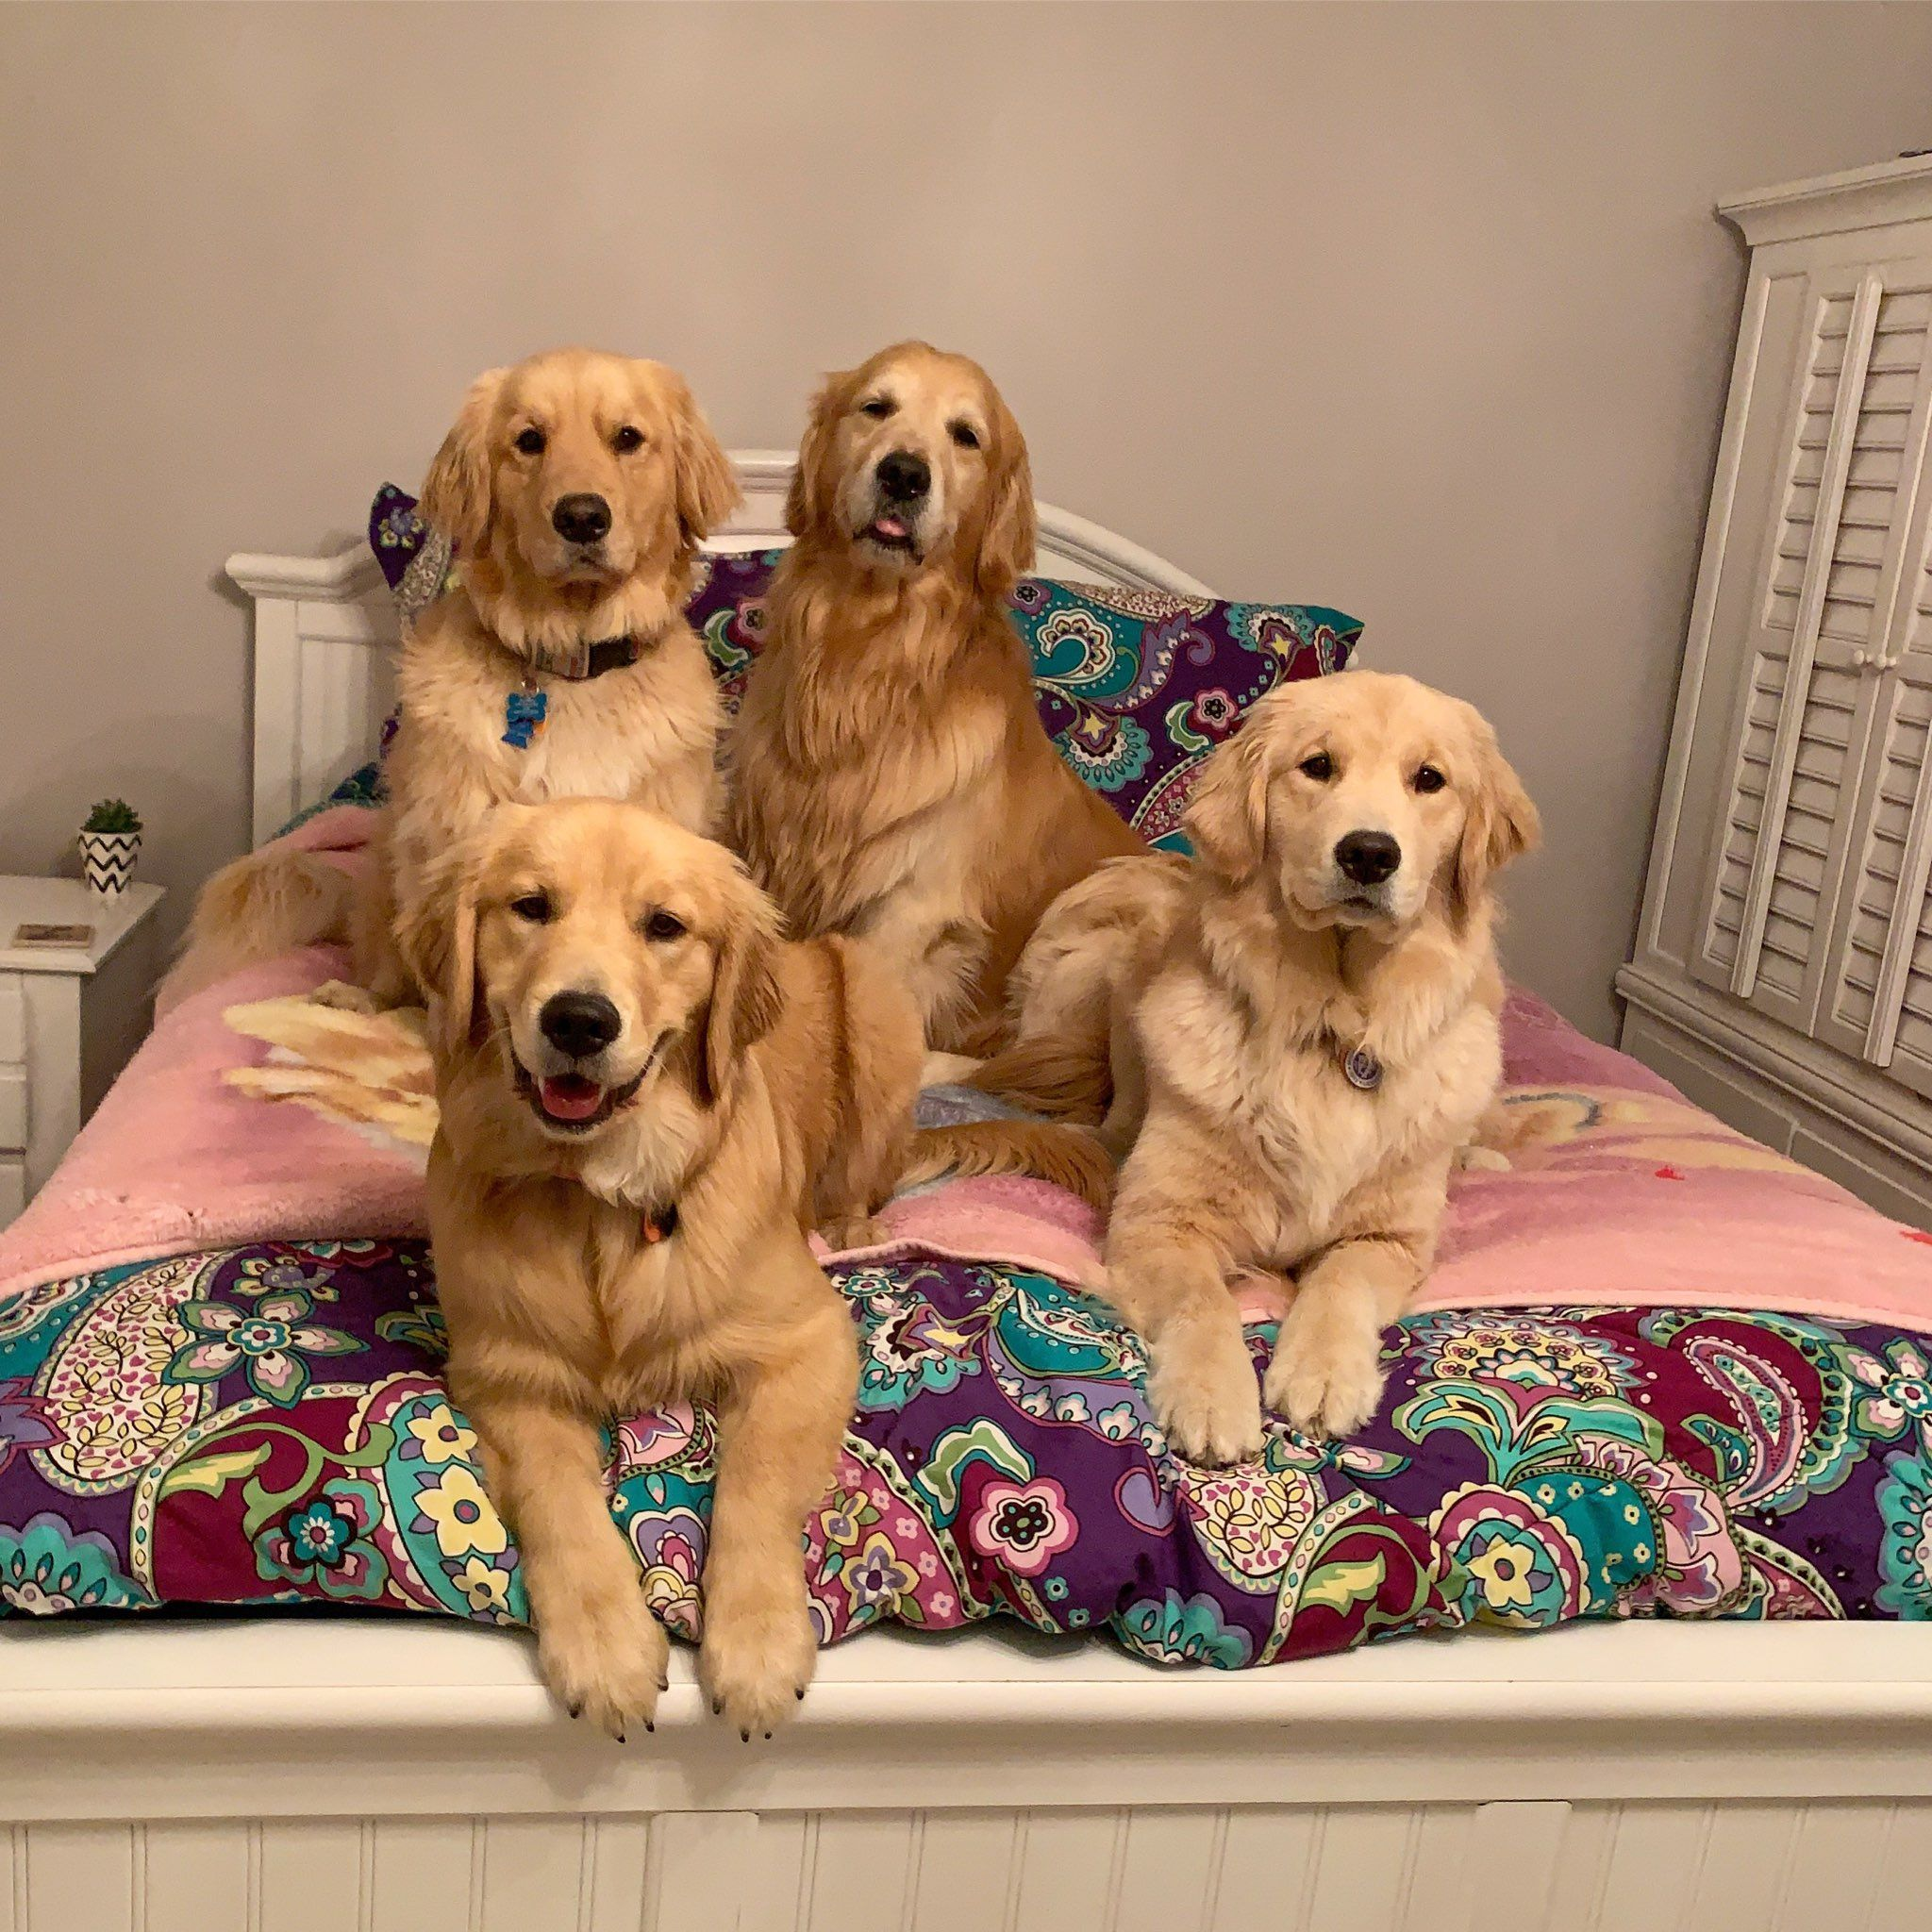 Looks Like My Daughter Will Be Sleeping On The Floor Tonight Cute Puppies Beautiful Dogs Dogs Golden Retriever